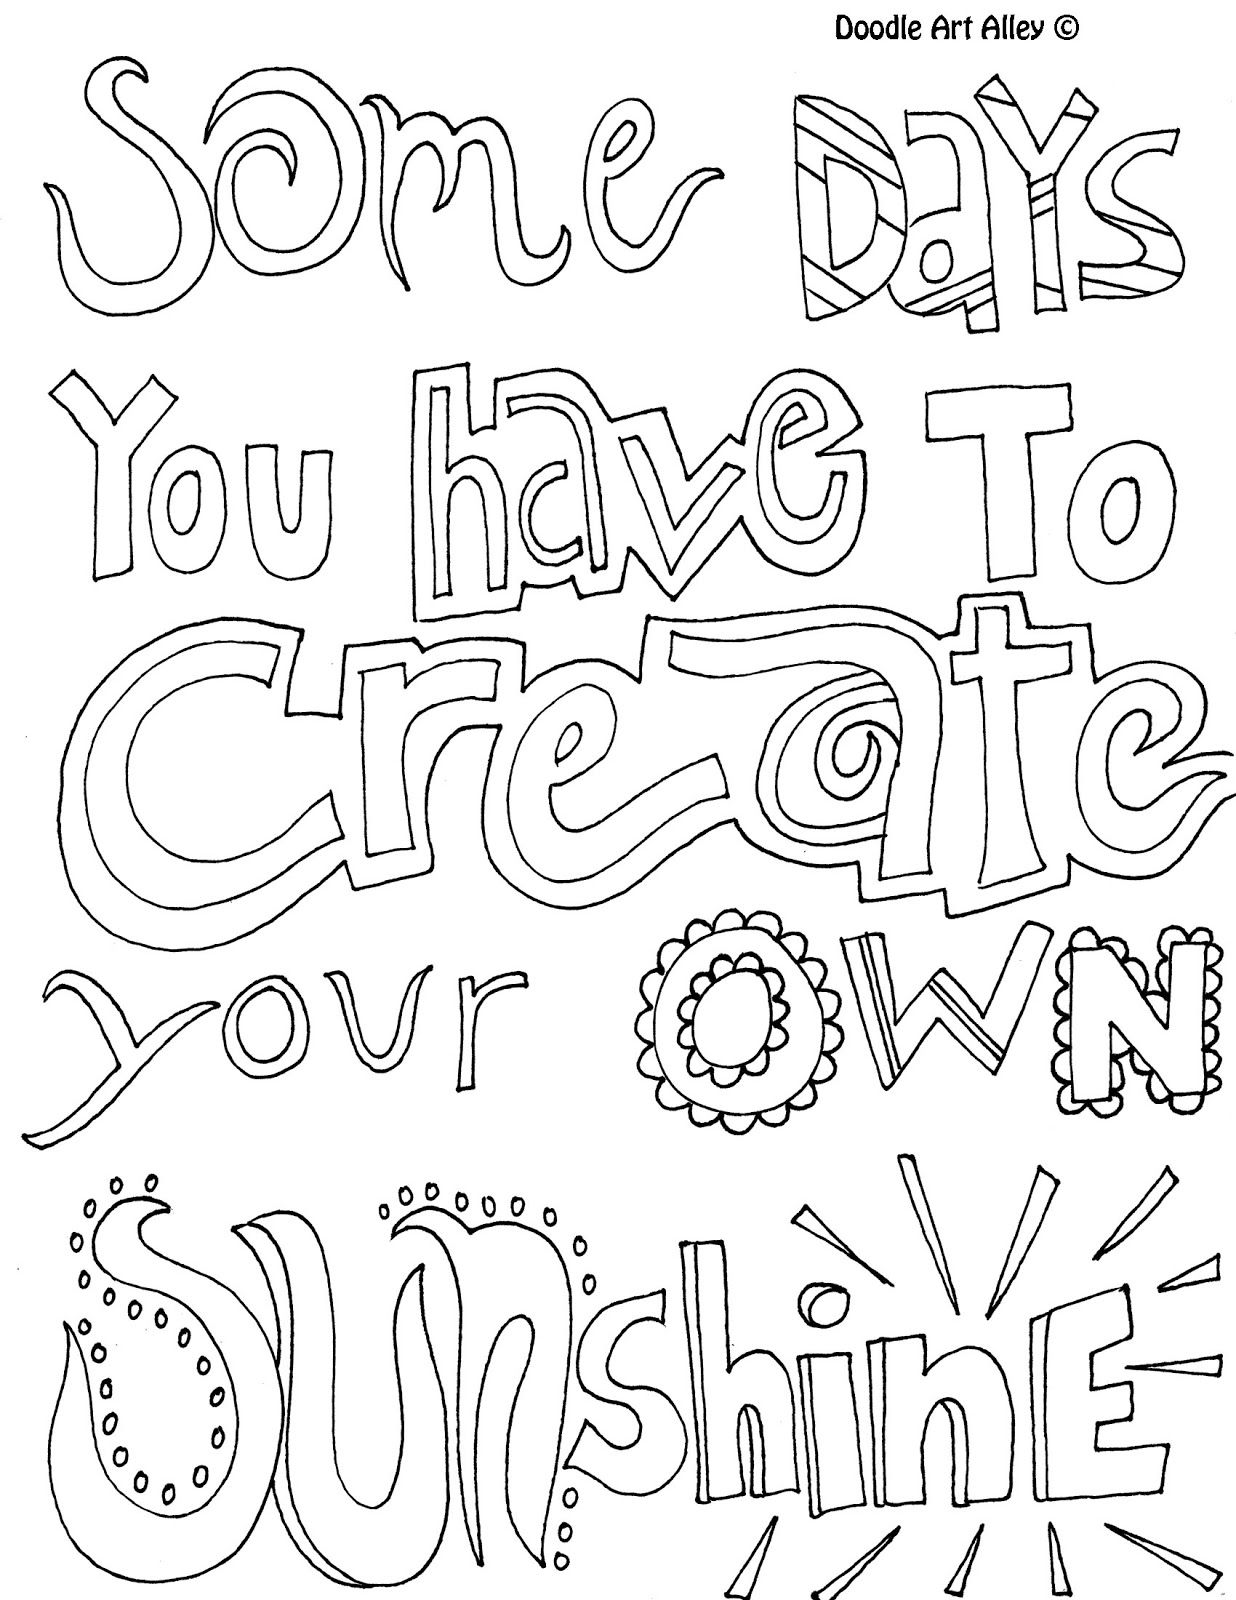 All quotes coloring pages (great quotes doodle page, great